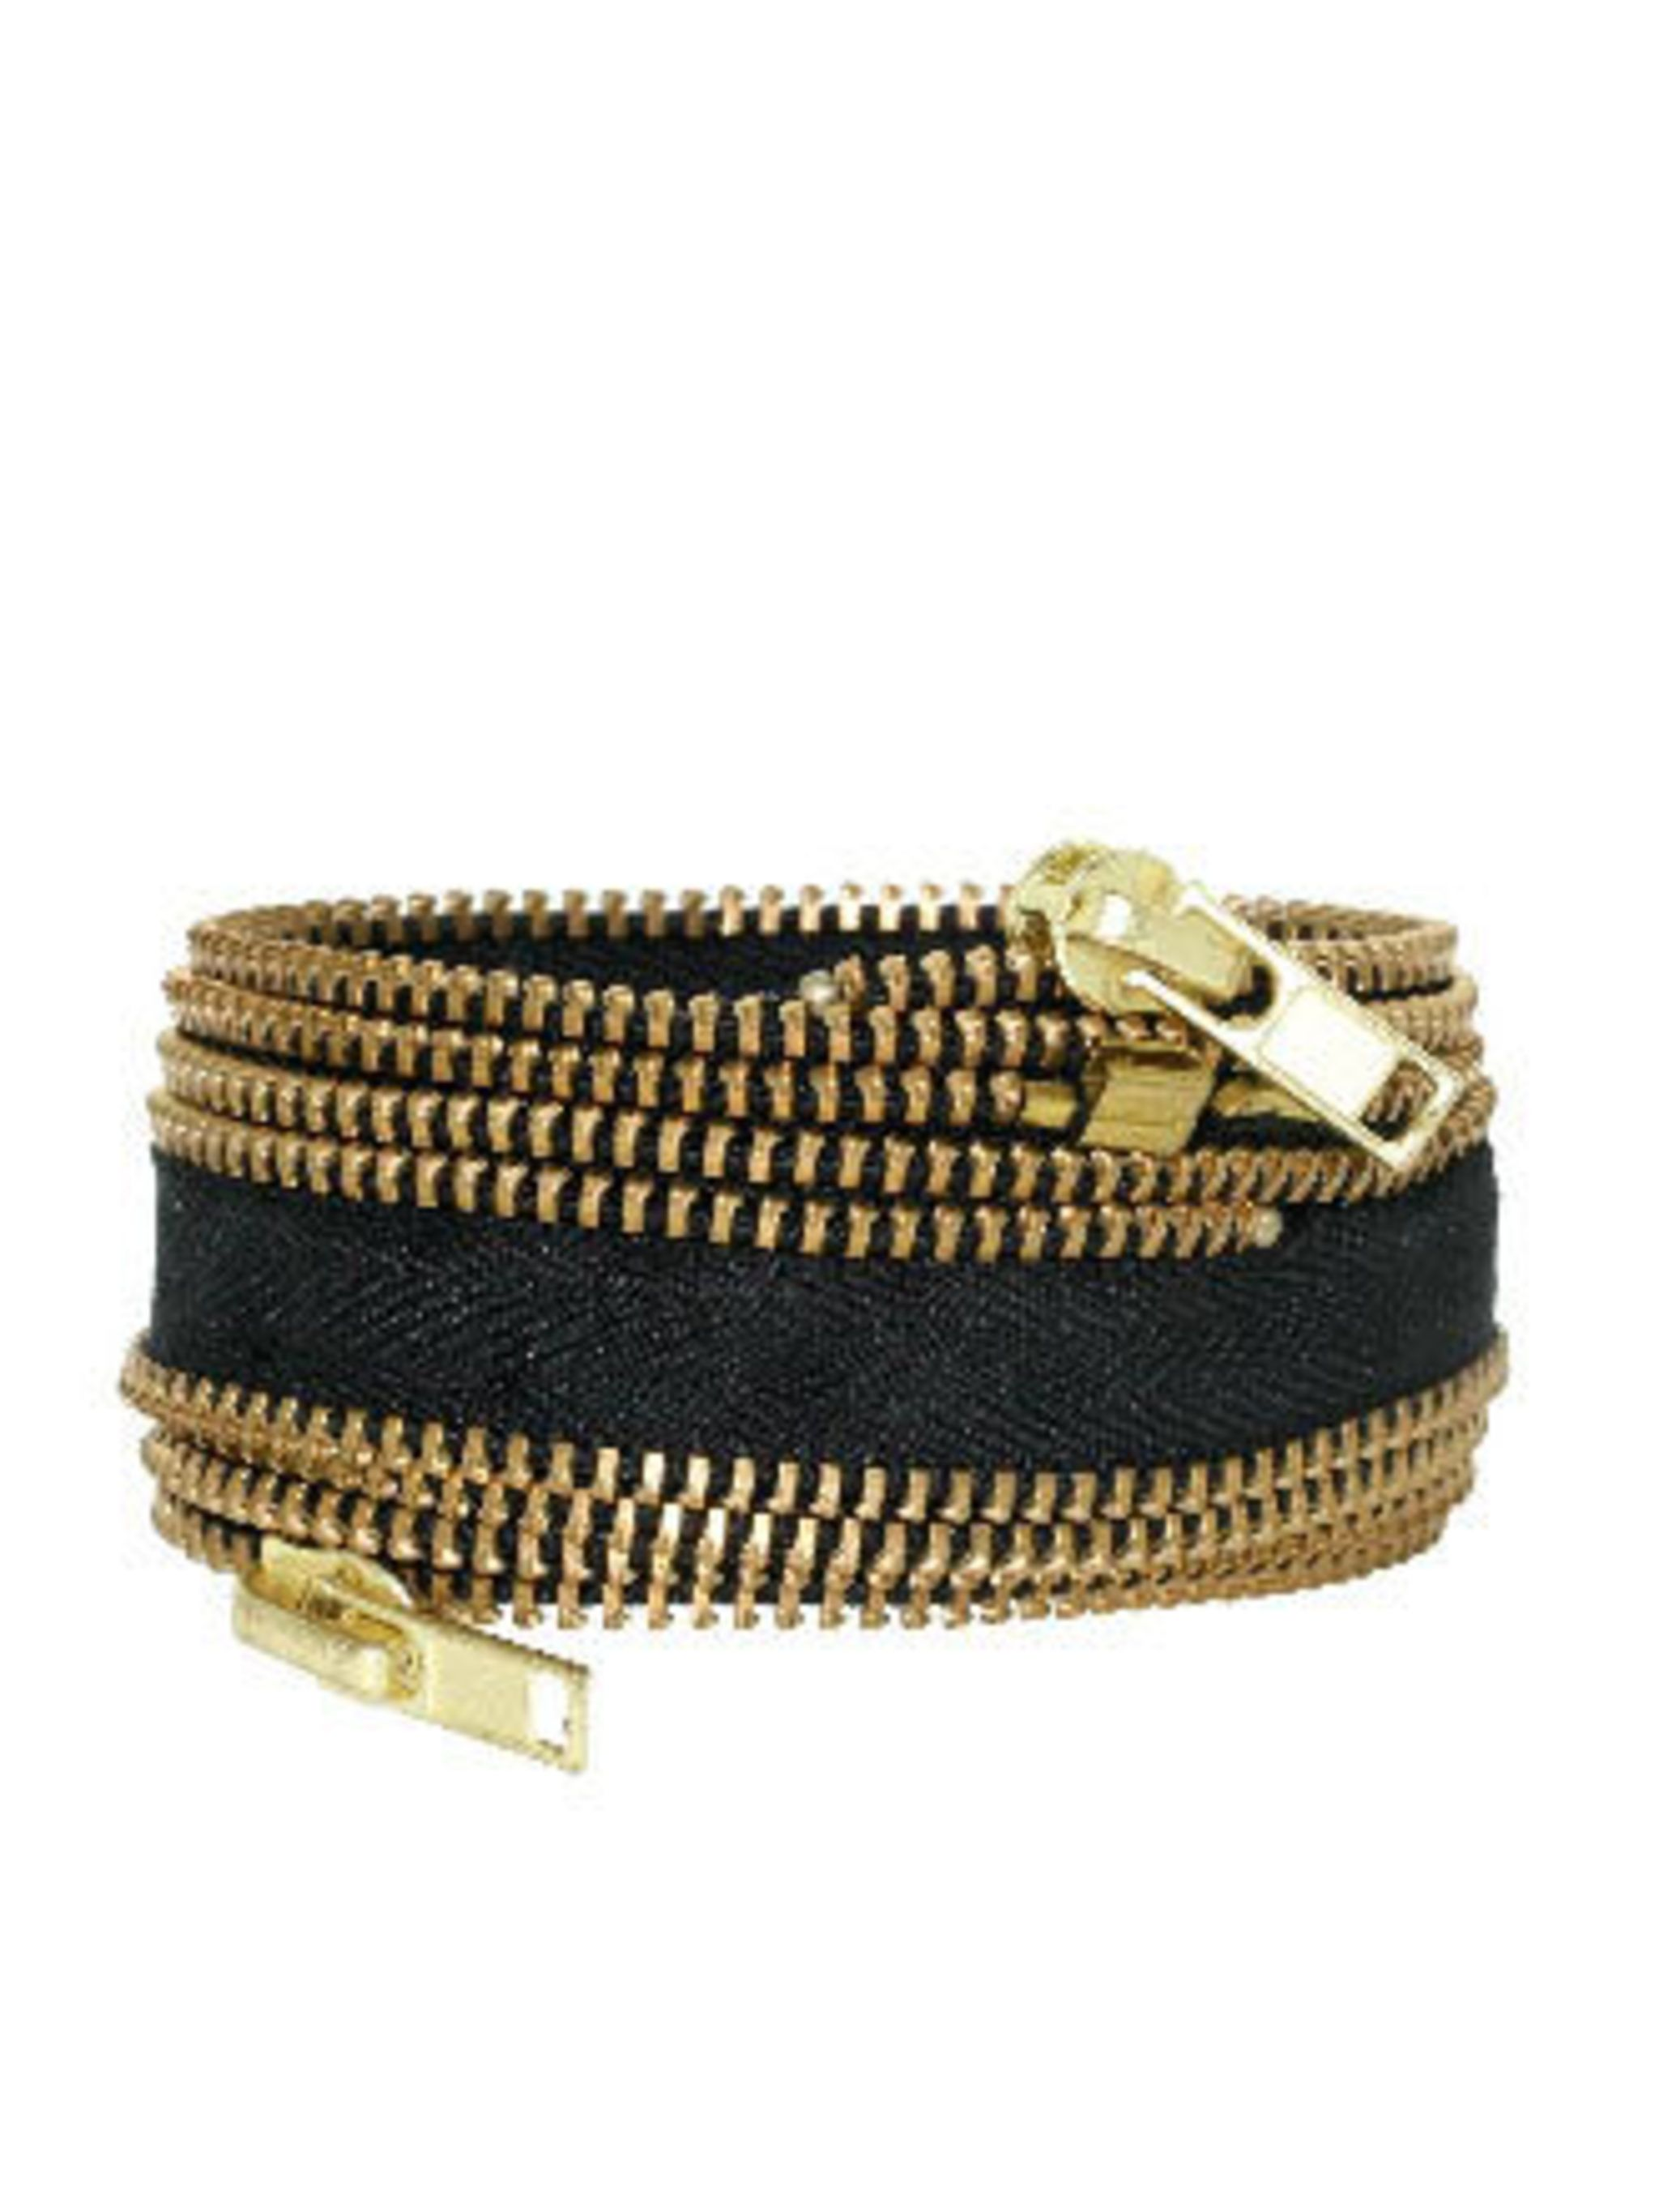 "<p> How cute is this zip bracelet? Make a final plea to Santa before it's too late.</p><p> Bracelet, £46 by Study NY at <a href=""http://www.kabiri.co.uk/jewellery/new-in/zipper-cuff.html"">Kabiri</a></p>"